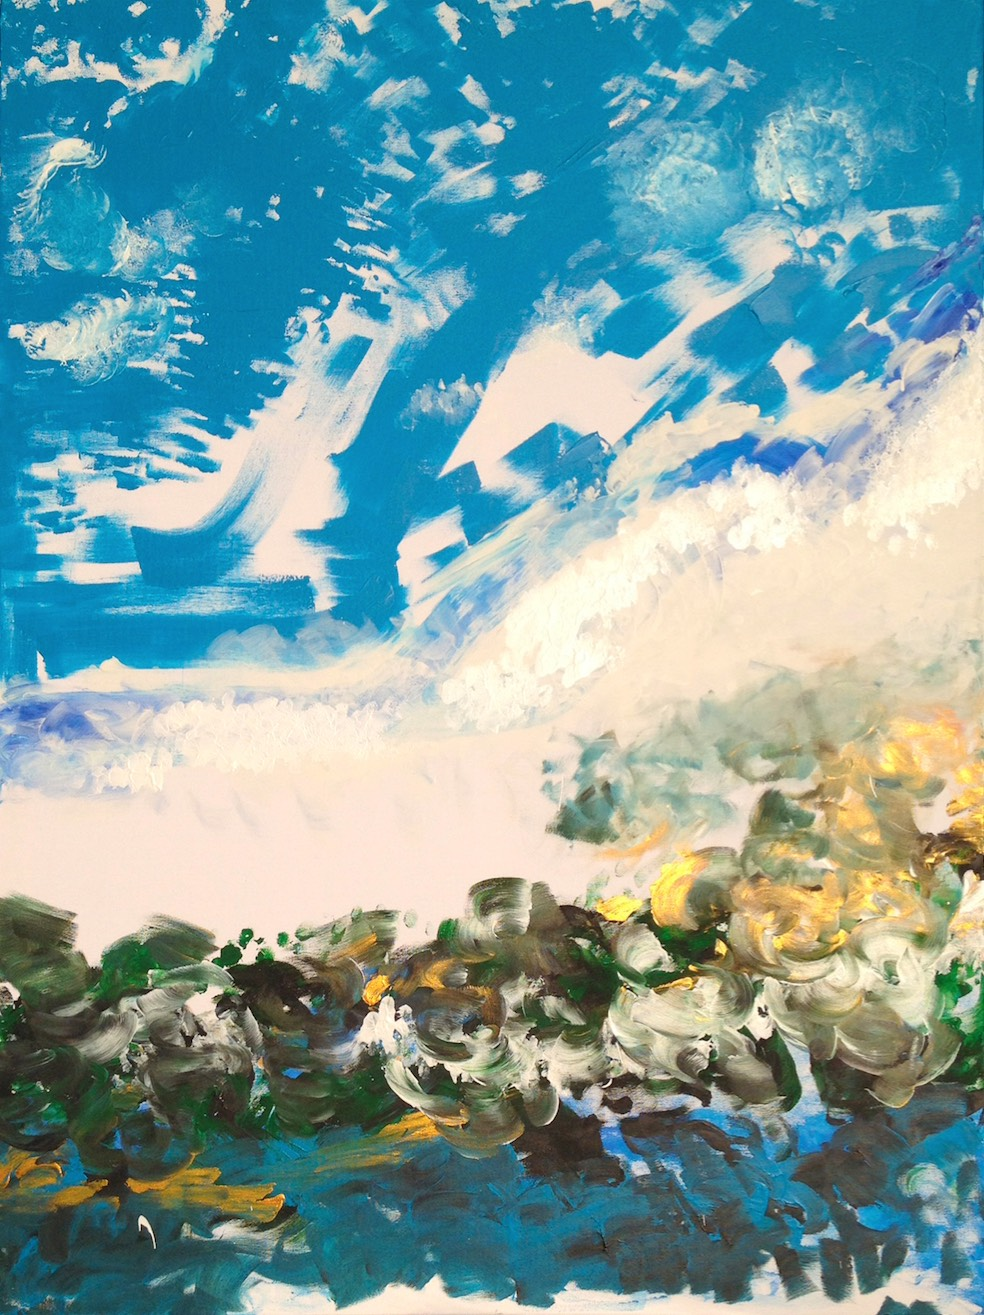 Celestial Avalance is a portrait oriented abstract that people see a white blur of snow falling down a mountain with white-covered objects hurled into a deep blue sky with either the sea or a lake at the bottom.